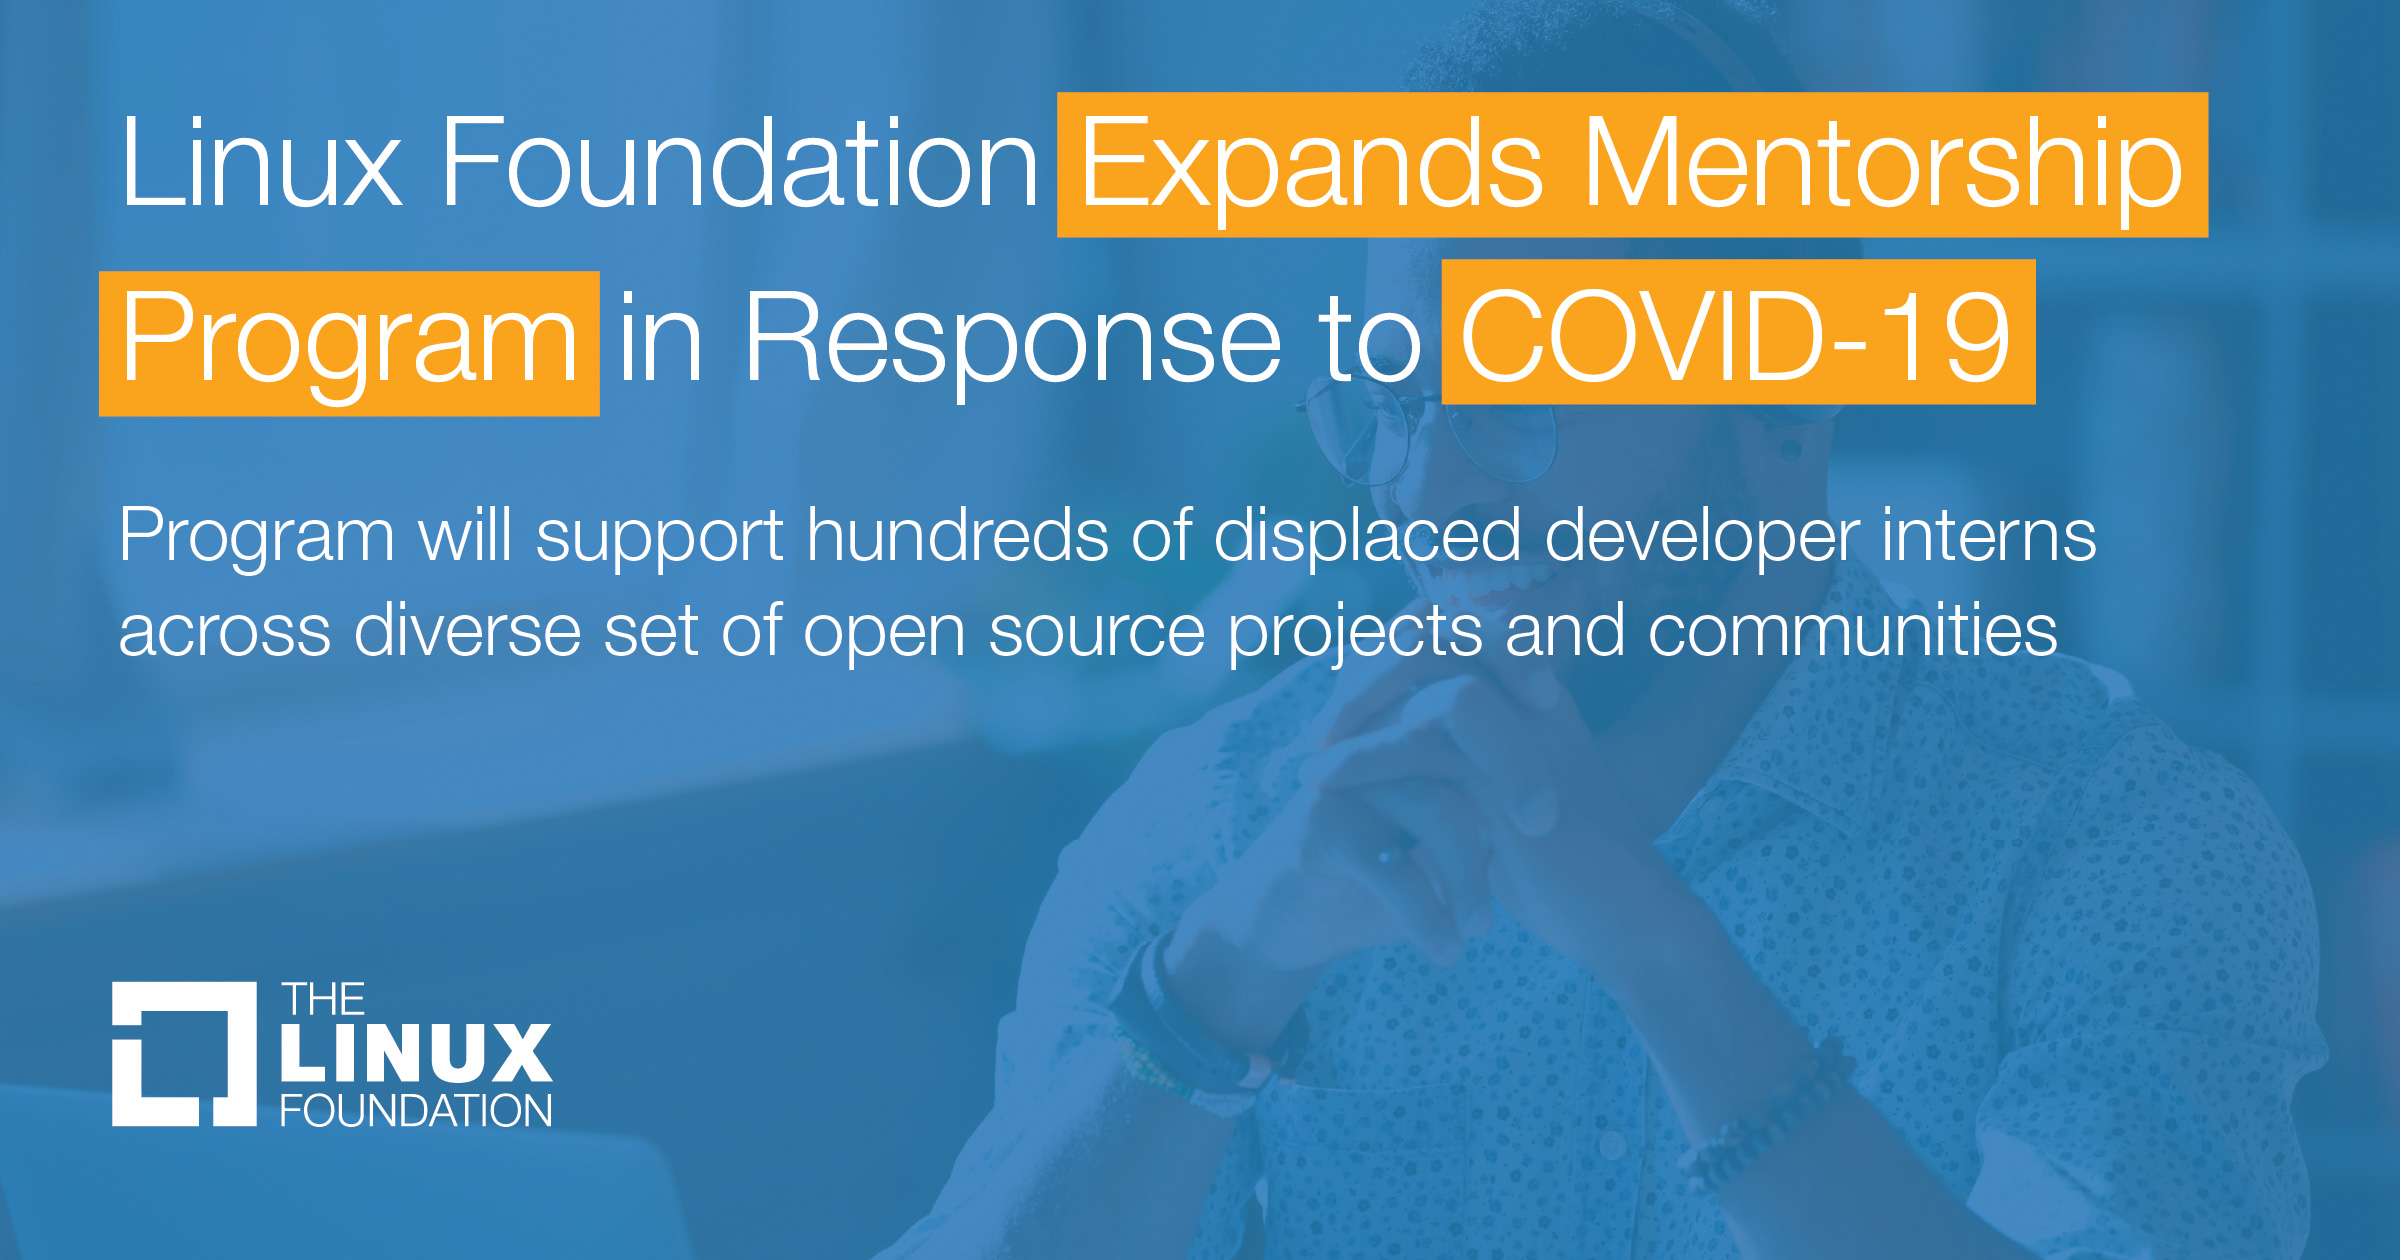 Linux Foundation Expands Mentorship Program in Response to COVID-19